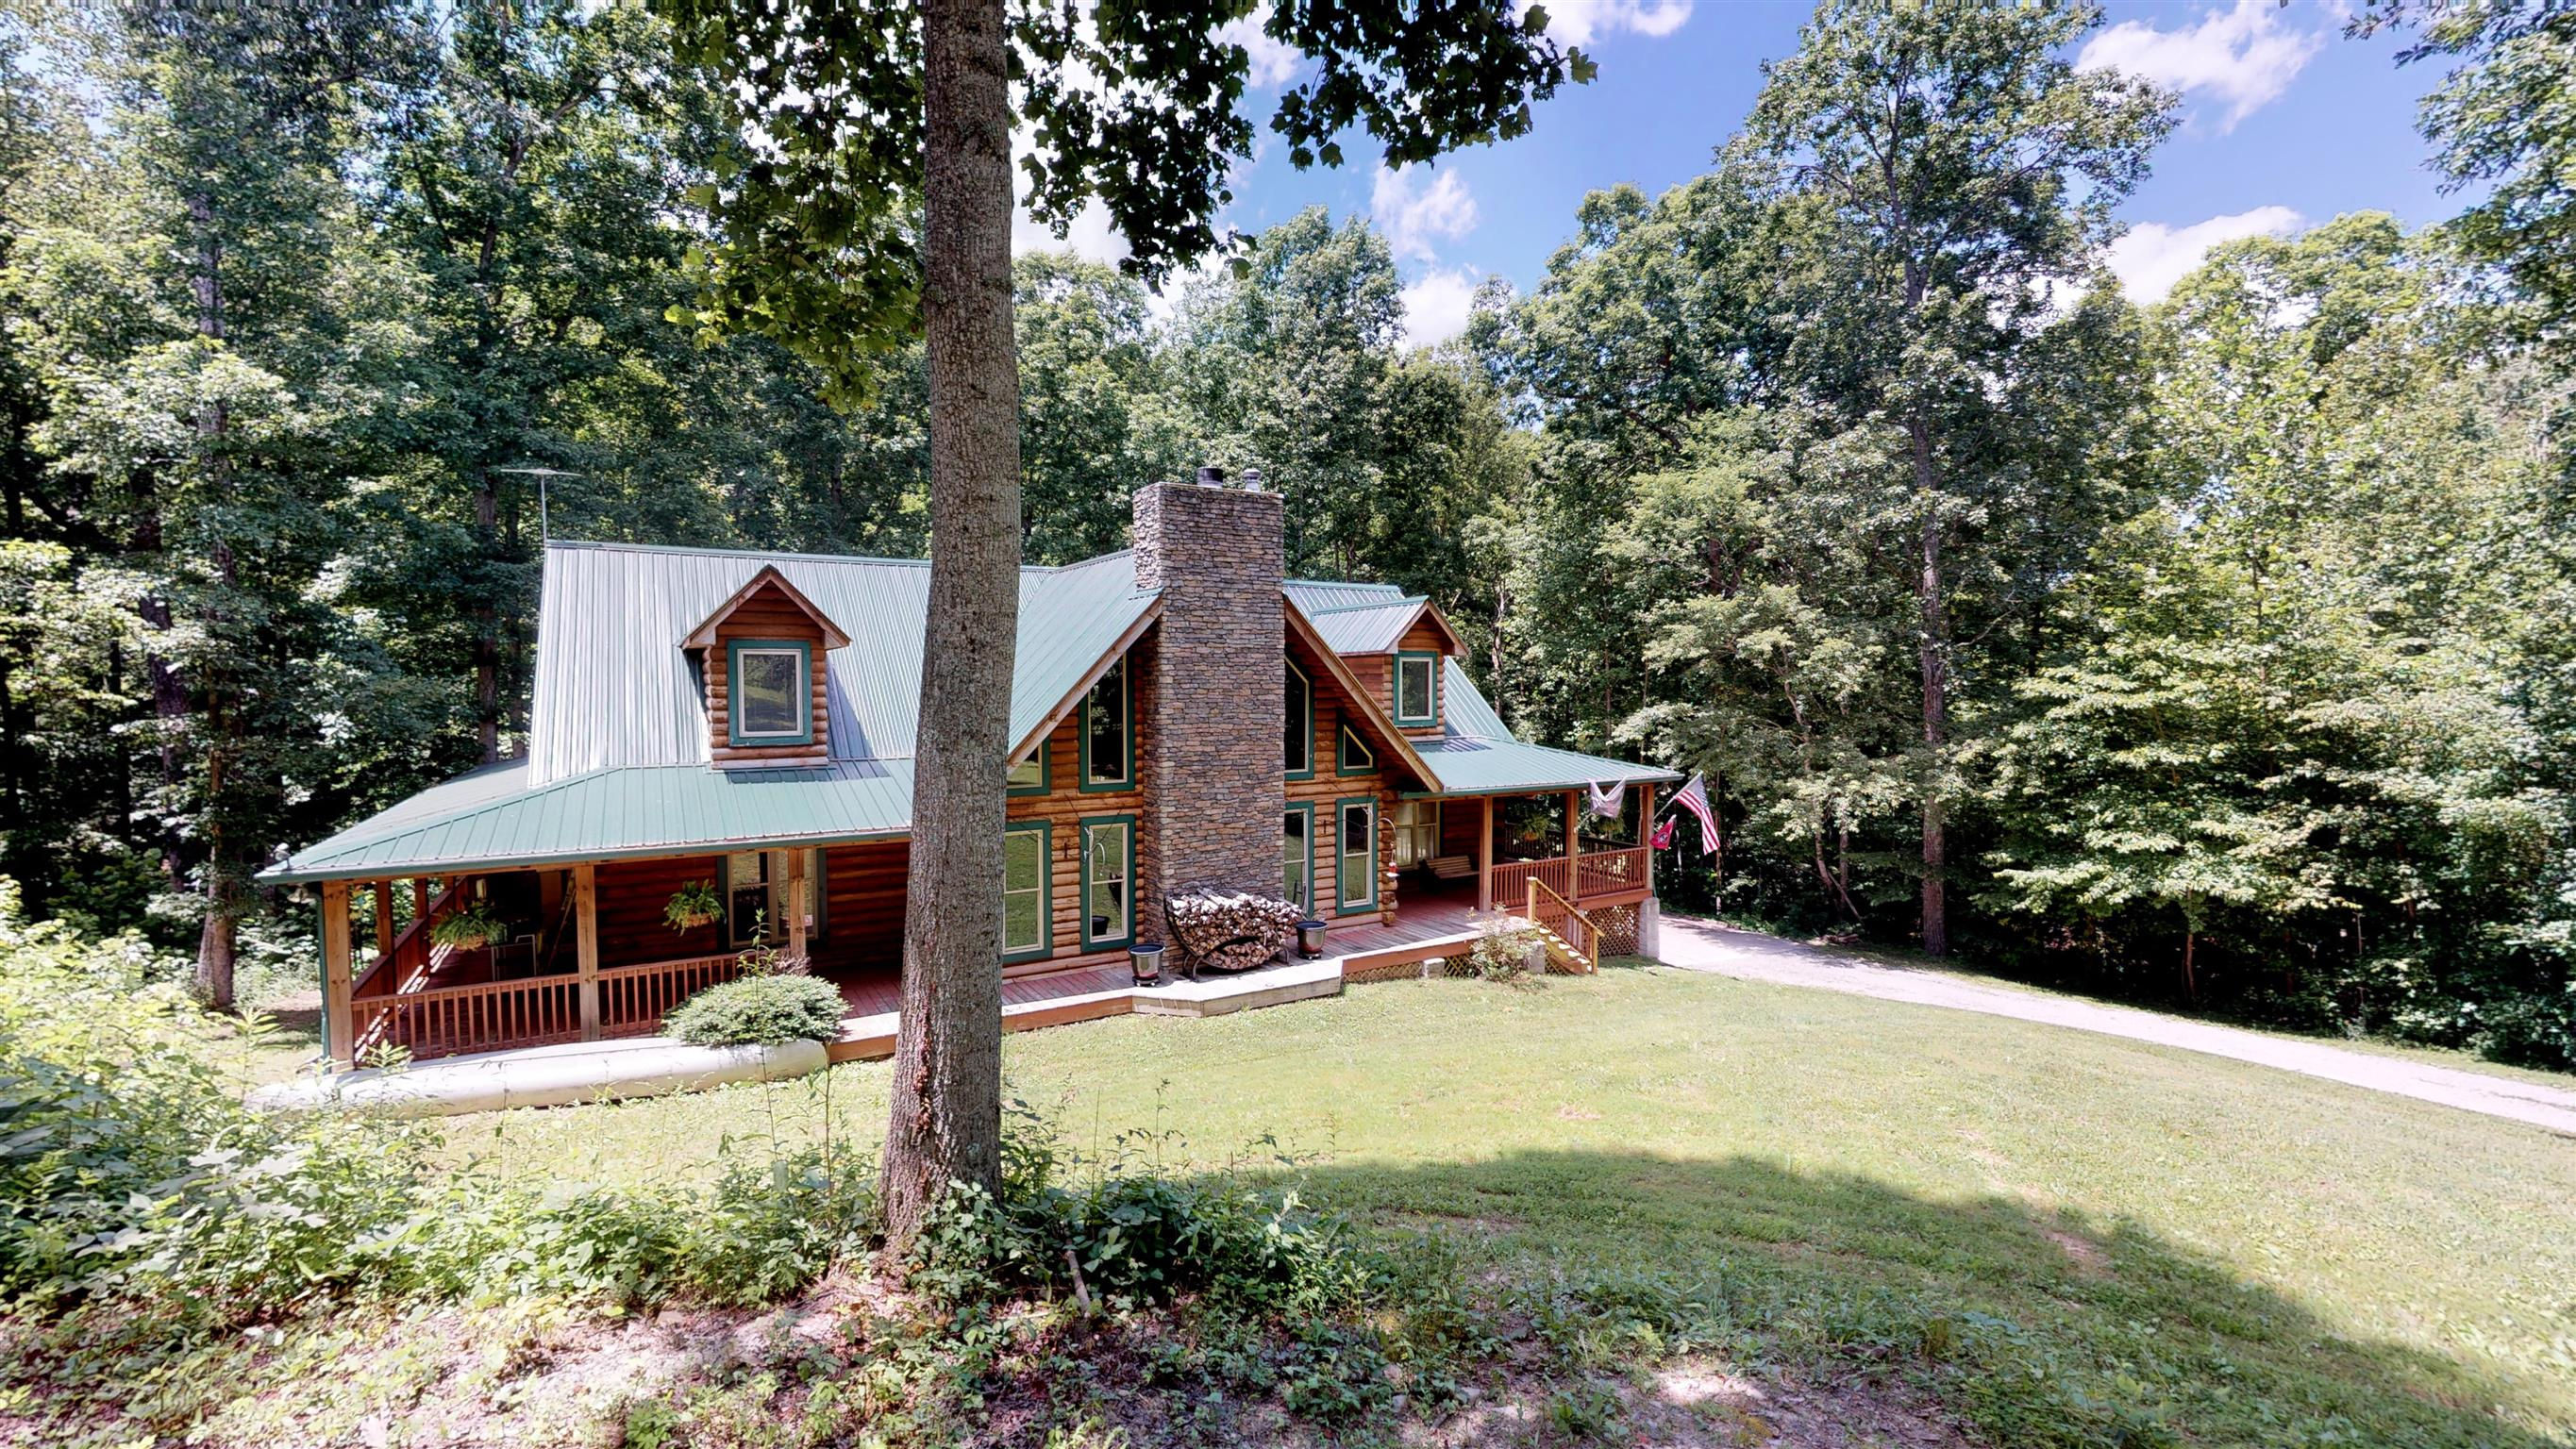 7117 Haskell School Rd, Fairview in Williamson County County, TN 37062 Home for Sale